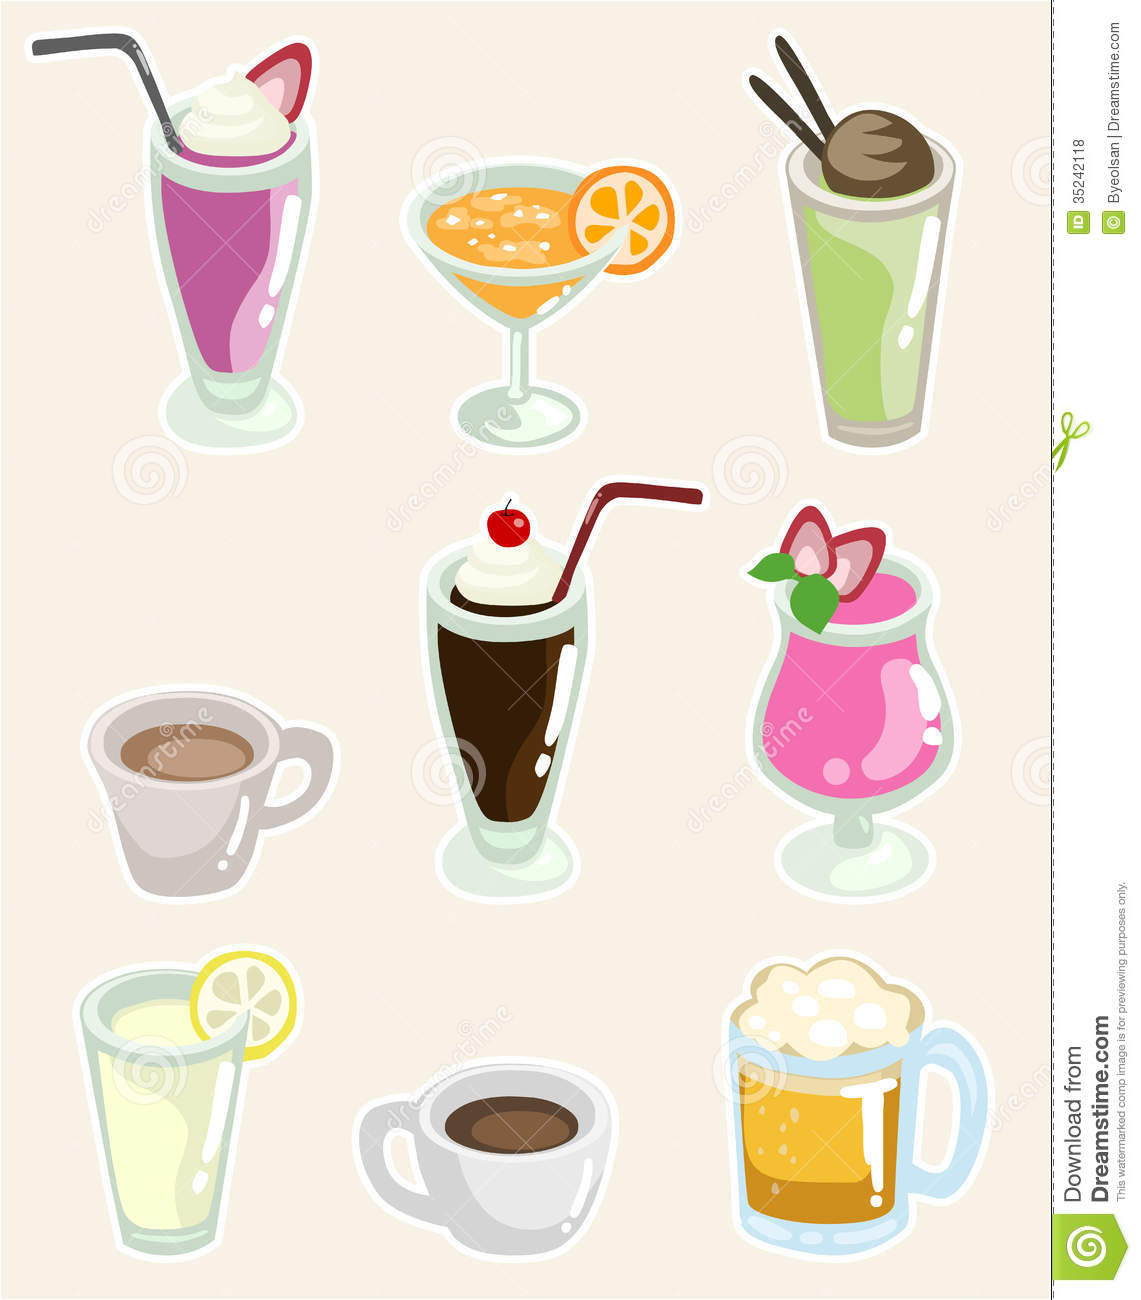 Royalty Free Stock Photos Set Beverages Cartoon Collection Drinks Image35242118 as well Nicole Farting In The Hallway 194378321 in addition Glass Cup And Water Vector 587233 likewise Juice Drawing as well Royalty Free Stock Photography Red Jelly Pudding White Plate Image35867297. on cartoon lemon juice